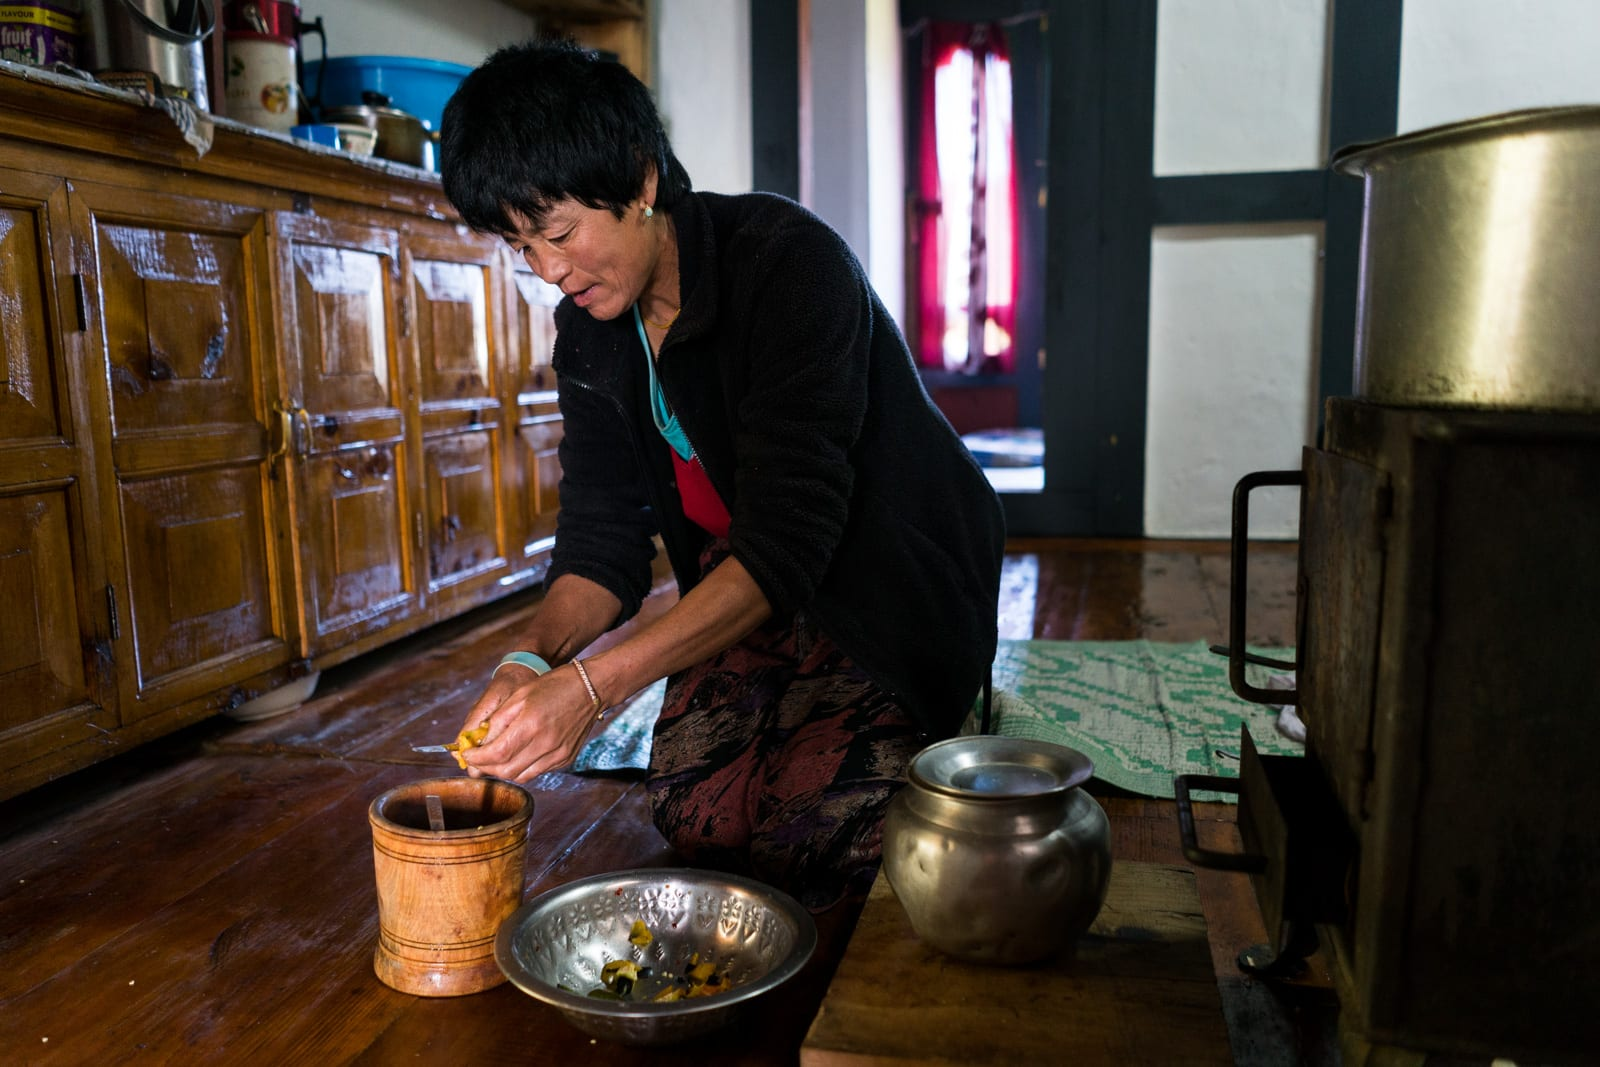 Photos of Bhutan - Homestay host in Phobjikha Valley cutting up chilies - Lost With Purpose travel blog